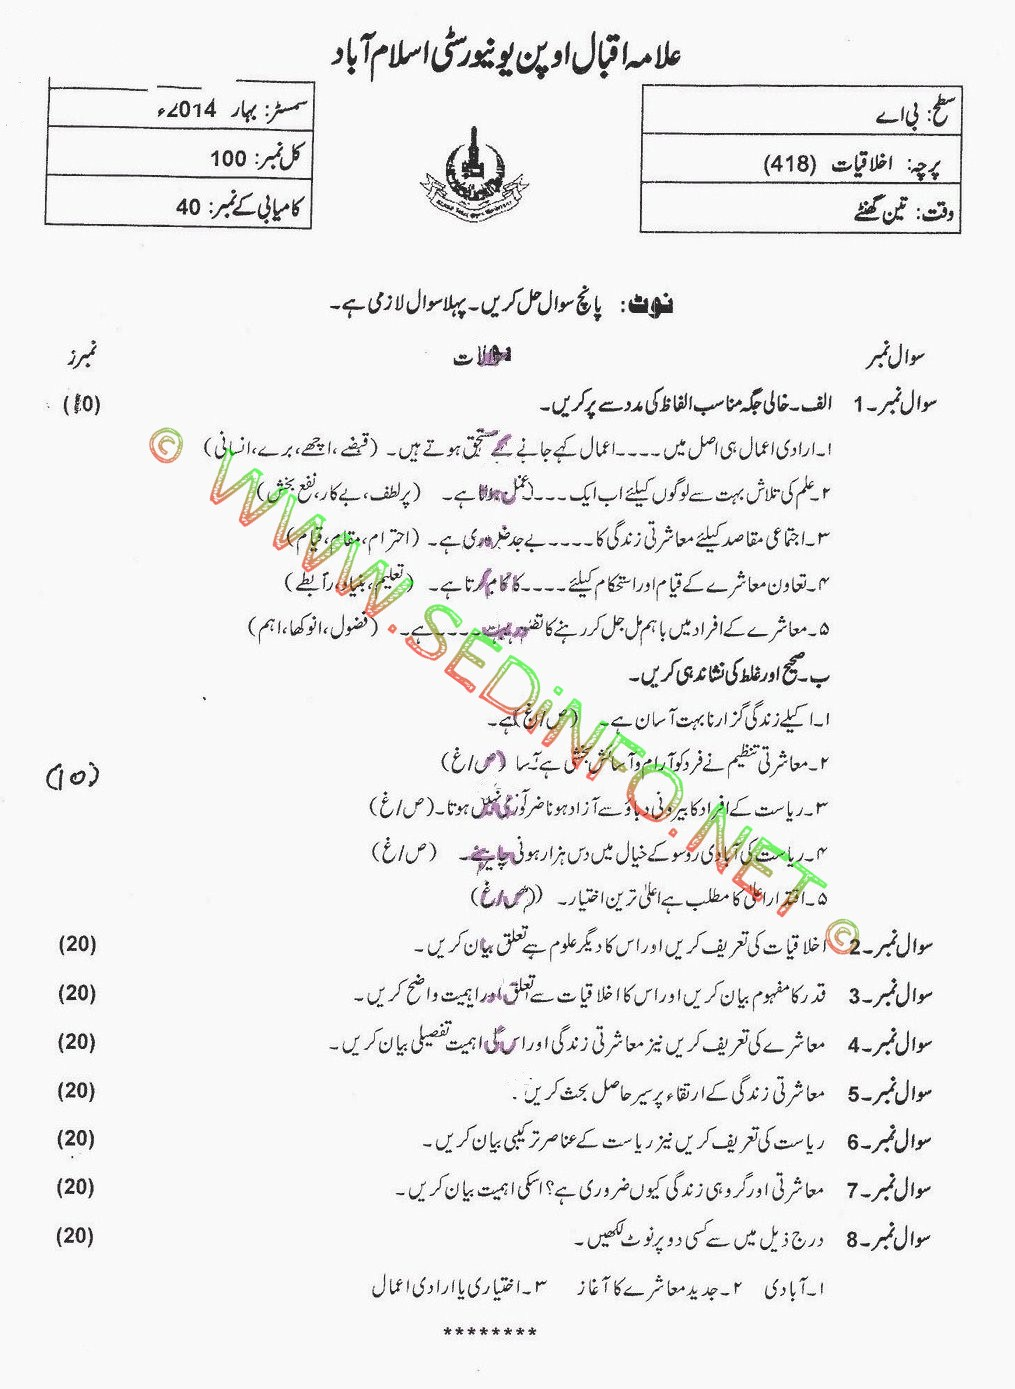 AIOU BA Code 418 Past Papers Spring 2014